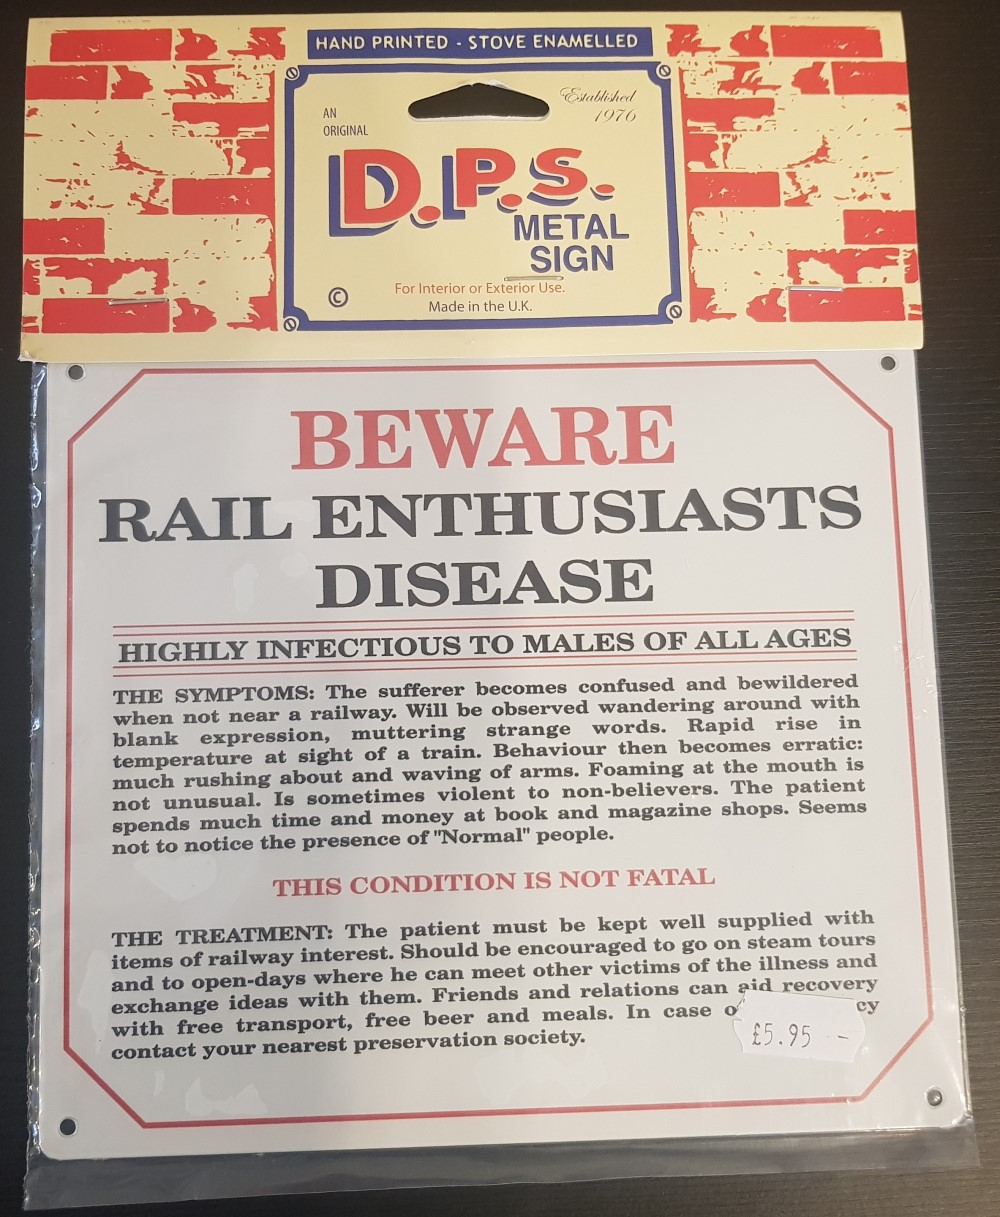 DPS Sign 'Rail Enthusiasts Disease'